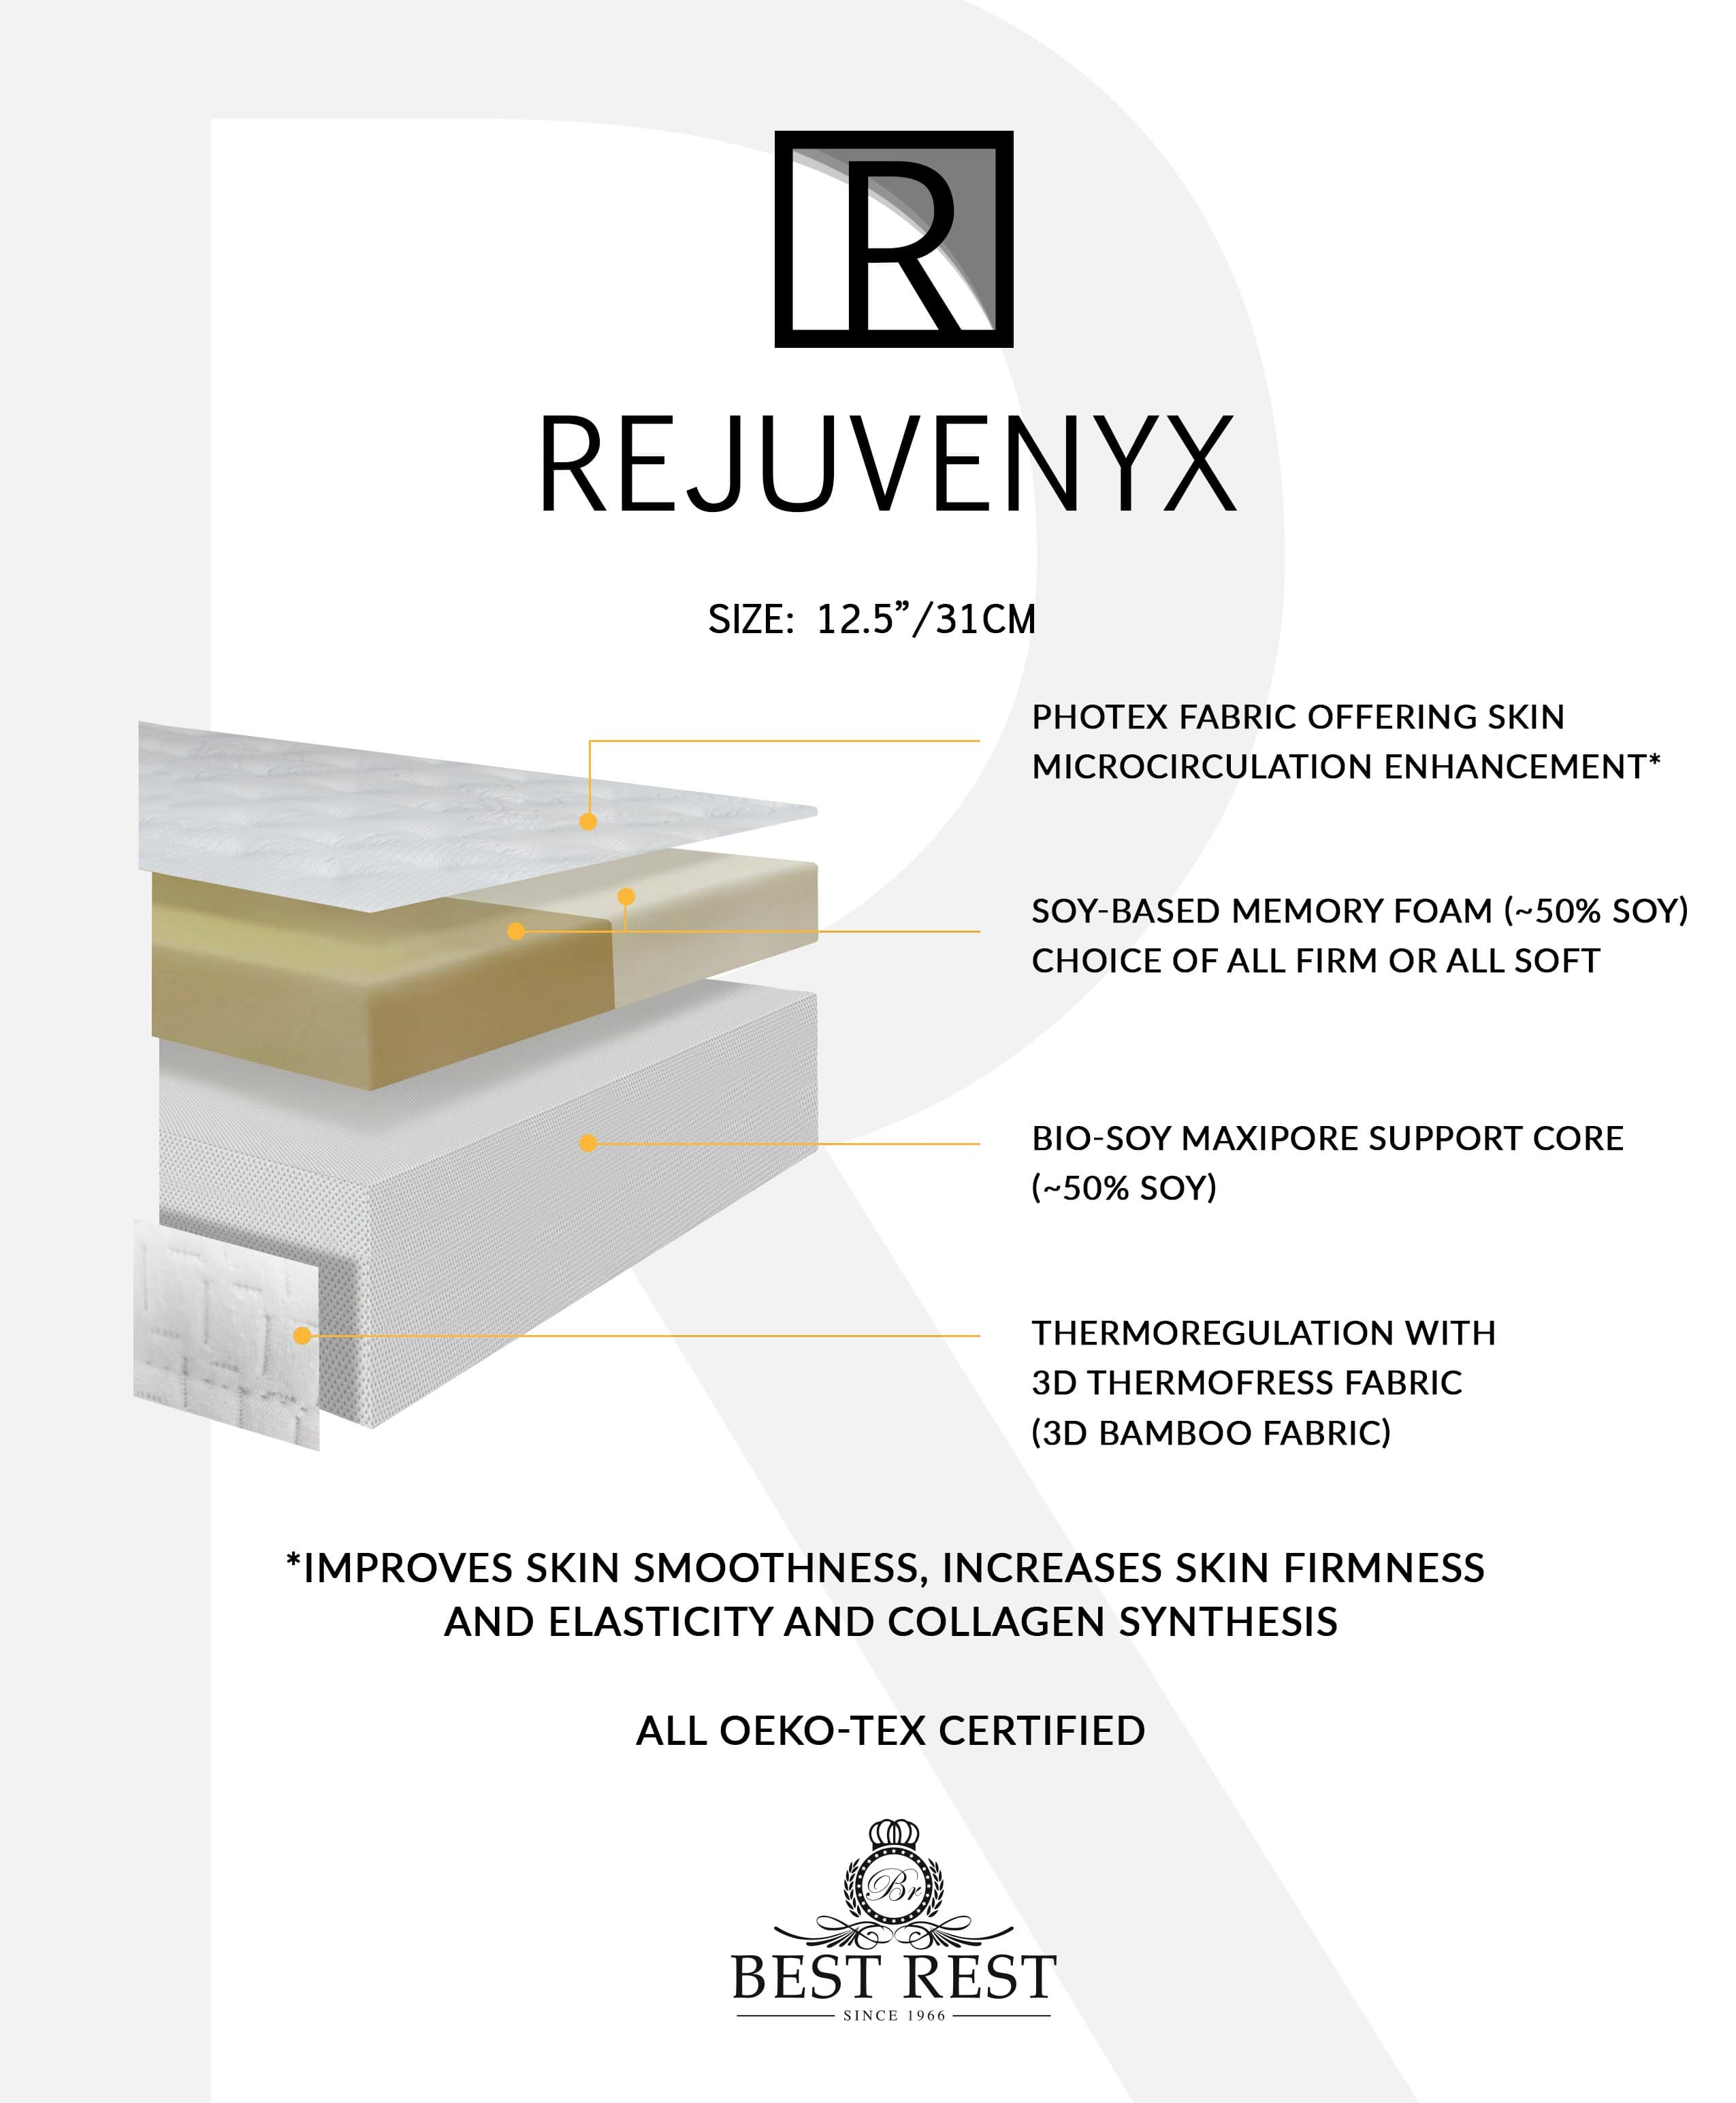 Rejuvenyx Mattress